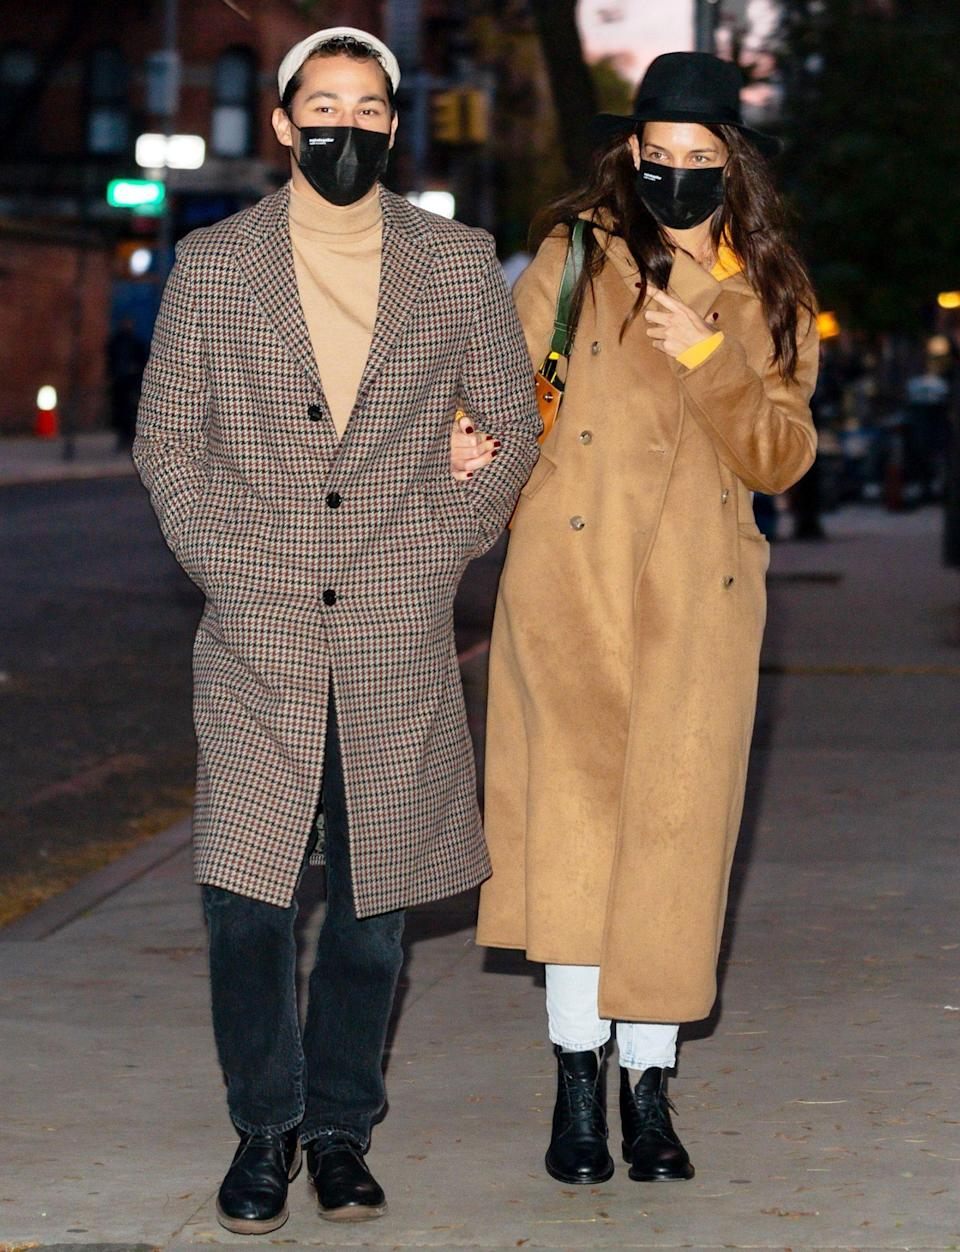 <p>Katie Holmes and boyfriend Emilio Vitolo Jr. step out in chic coats on Tuesday in N.Y.C. </p>